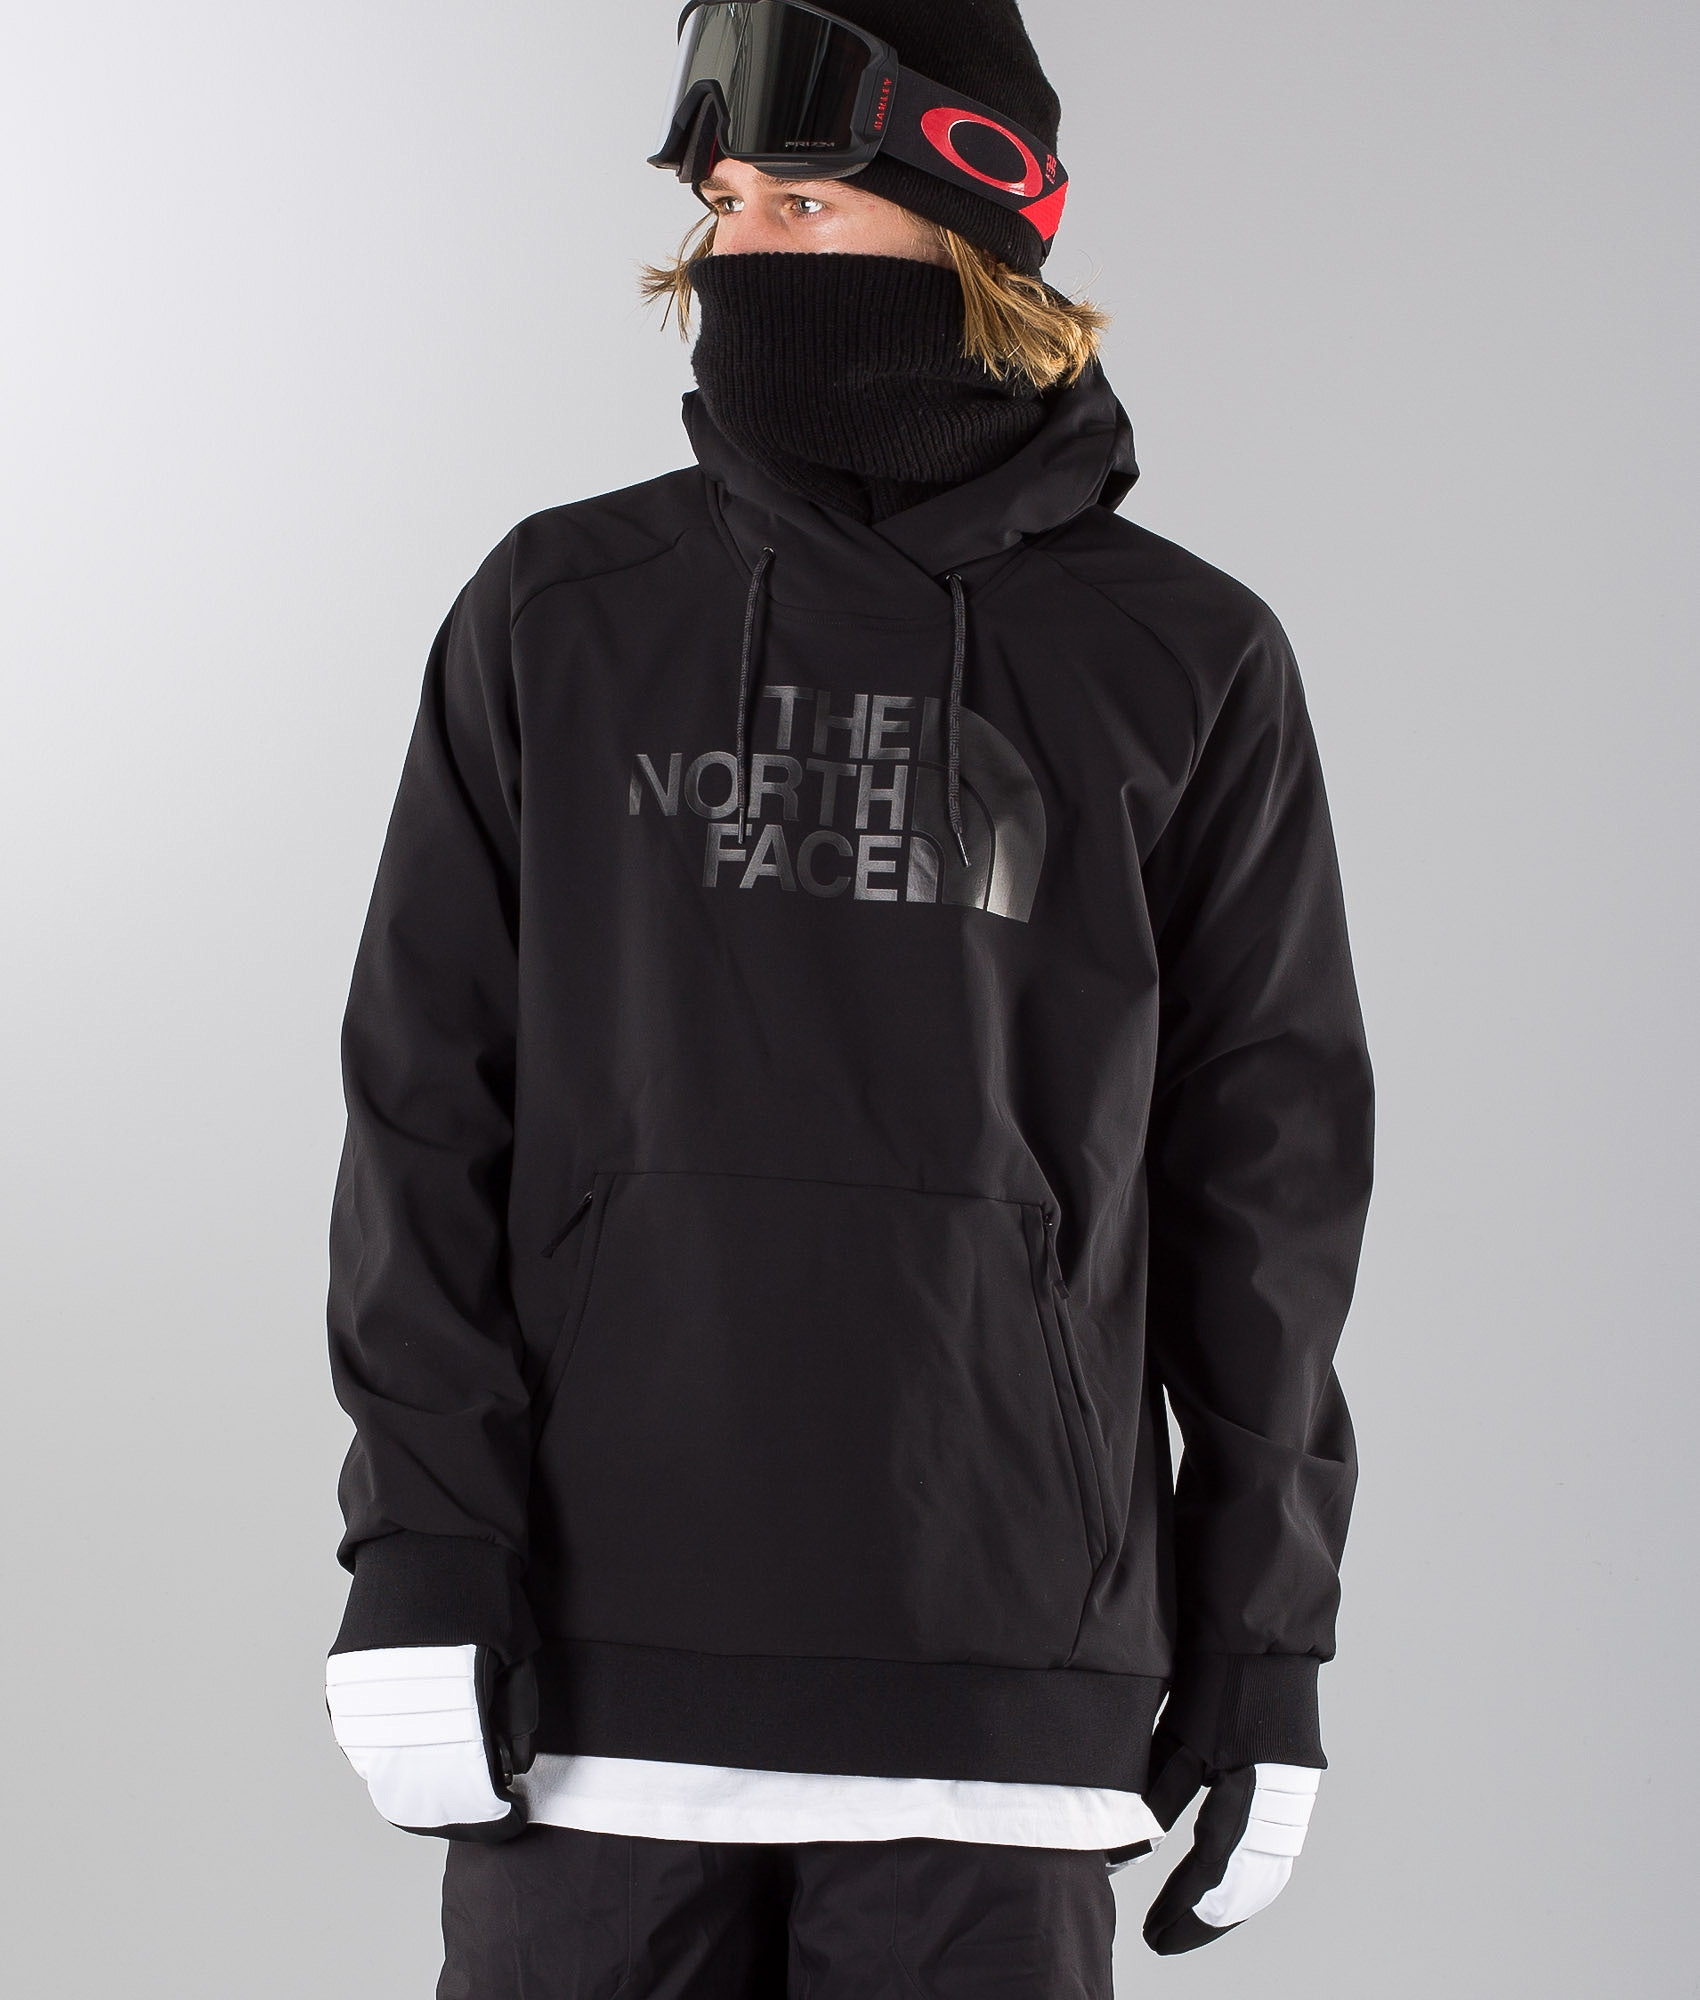 The North Face Tekno Logo Hoodie Ski Jacket Black - Ridestore.com 95ffbfdabb2c